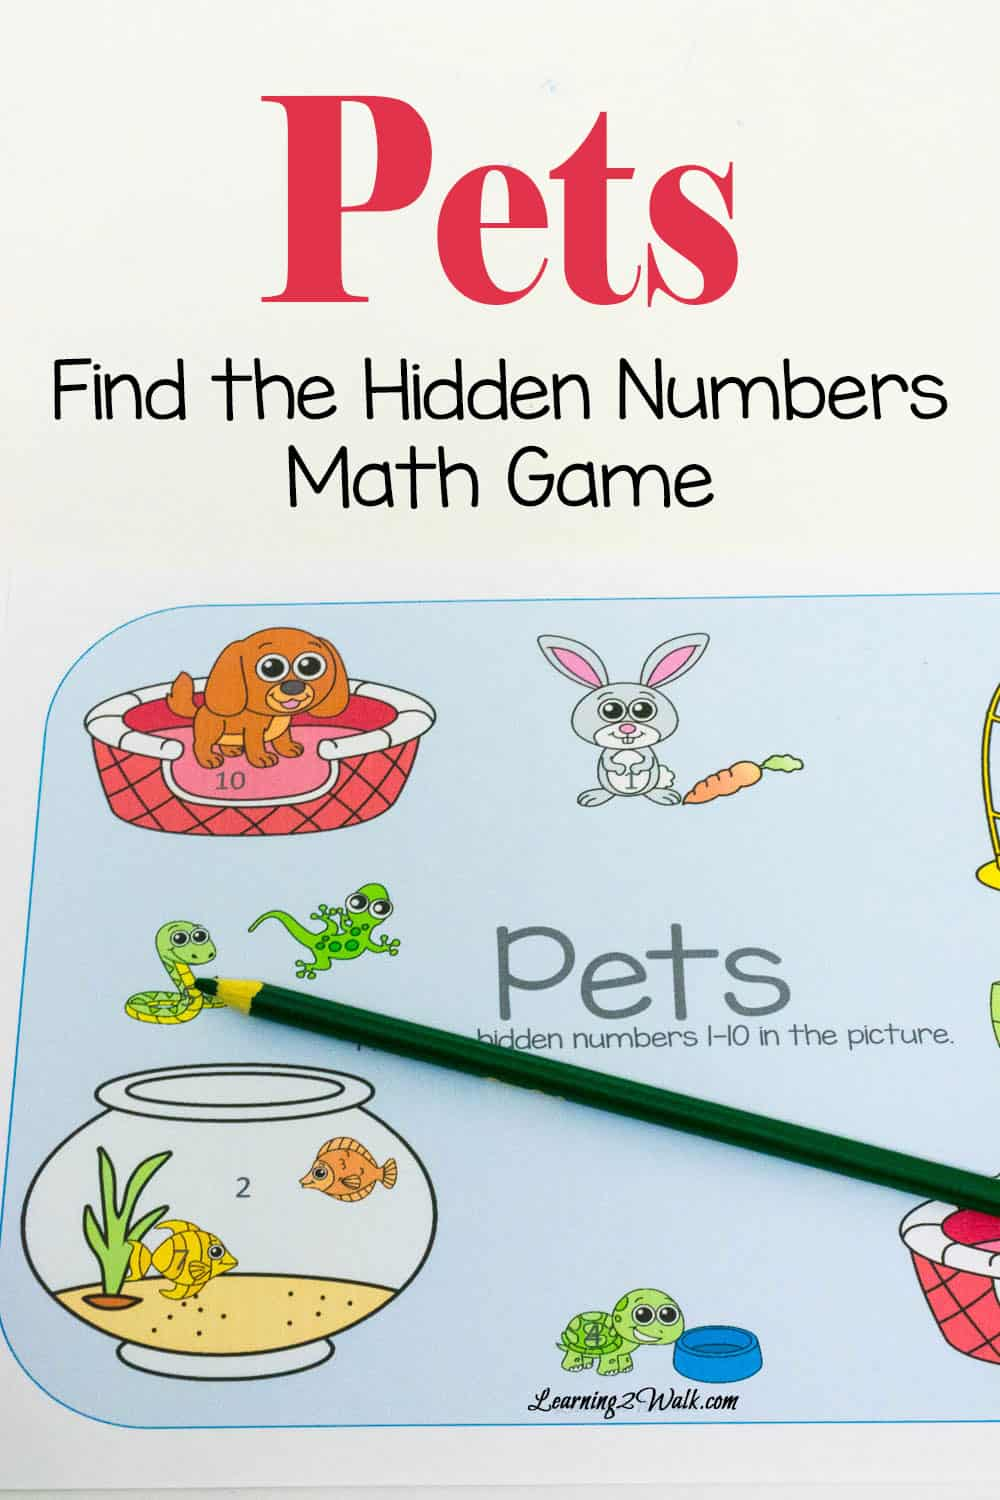 Find the Hidden Numbers- Pets Math Game